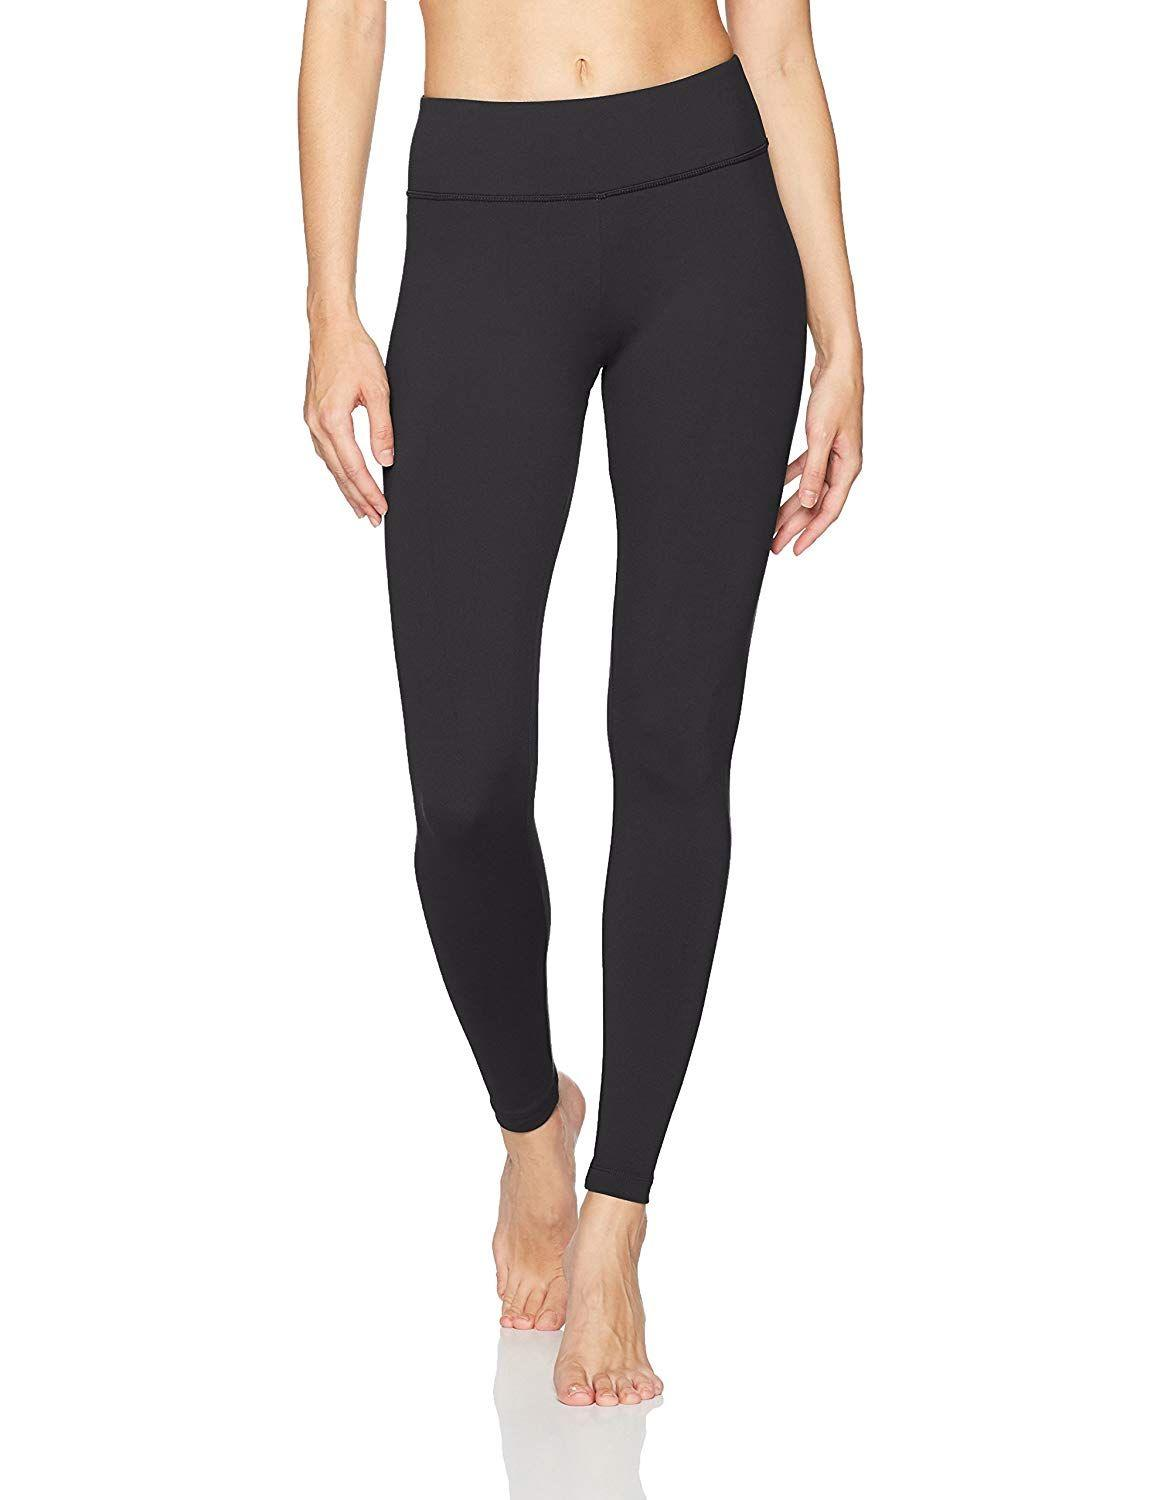 """<h3><a href=""""https://www.amazon.com/Danskin-Womens-Signature-Waist-Legging/dp/B0713XWYT1"""" rel=""""nofollow noopener"""" target=""""_blank"""" data-ylk=""""slk:Danskin Wide Waist Yoga Ankle Legging"""" class=""""link rapid-noclick-resp"""">Danskin Wide Waist Yoga Ankle Legging</a></h3> <p>4.3 out of 5 stars and 123 reviews</p> <p><strong>Promising Review:</strong> If you're looking for a pair of leggings that will work throughout the hot summer, commenter <a href=""""https://www.amazon.com/gp/customer-reviews/R3ROHNLFVF34HS"""" rel=""""nofollow noopener"""" target=""""_blank"""" data-ylk=""""slk:Charlene Boyd"""" class=""""link rapid-noclick-resp"""">Charlene Boyd</a> says these can withstand the Florida heat: """"...<br>Grabbed these for a Disney World bounding outfit. It was dreadfully hot but never really noticed that I was wearing pretty thick leggings. Similarly, I expect they will be quite comfortable in cooler months as well. They are opaque, fit well, and definitely do not slide. The thick band helped slim my remaining baby pooch so I felt great wearing them. Highly recommend.""""</p> <br> <br> <strong>Danskin</strong> Signature Wide Waist Yoga Ankle Legging, $24, available at <a href=""""https://www.amazon.com/Danskin-Womens-Signature-Waist-Legging/dp/B0713XWYT1"""" rel=""""nofollow noopener"""" target=""""_blank"""" data-ylk=""""slk:Amazon"""" class=""""link rapid-noclick-resp"""">Amazon</a>"""